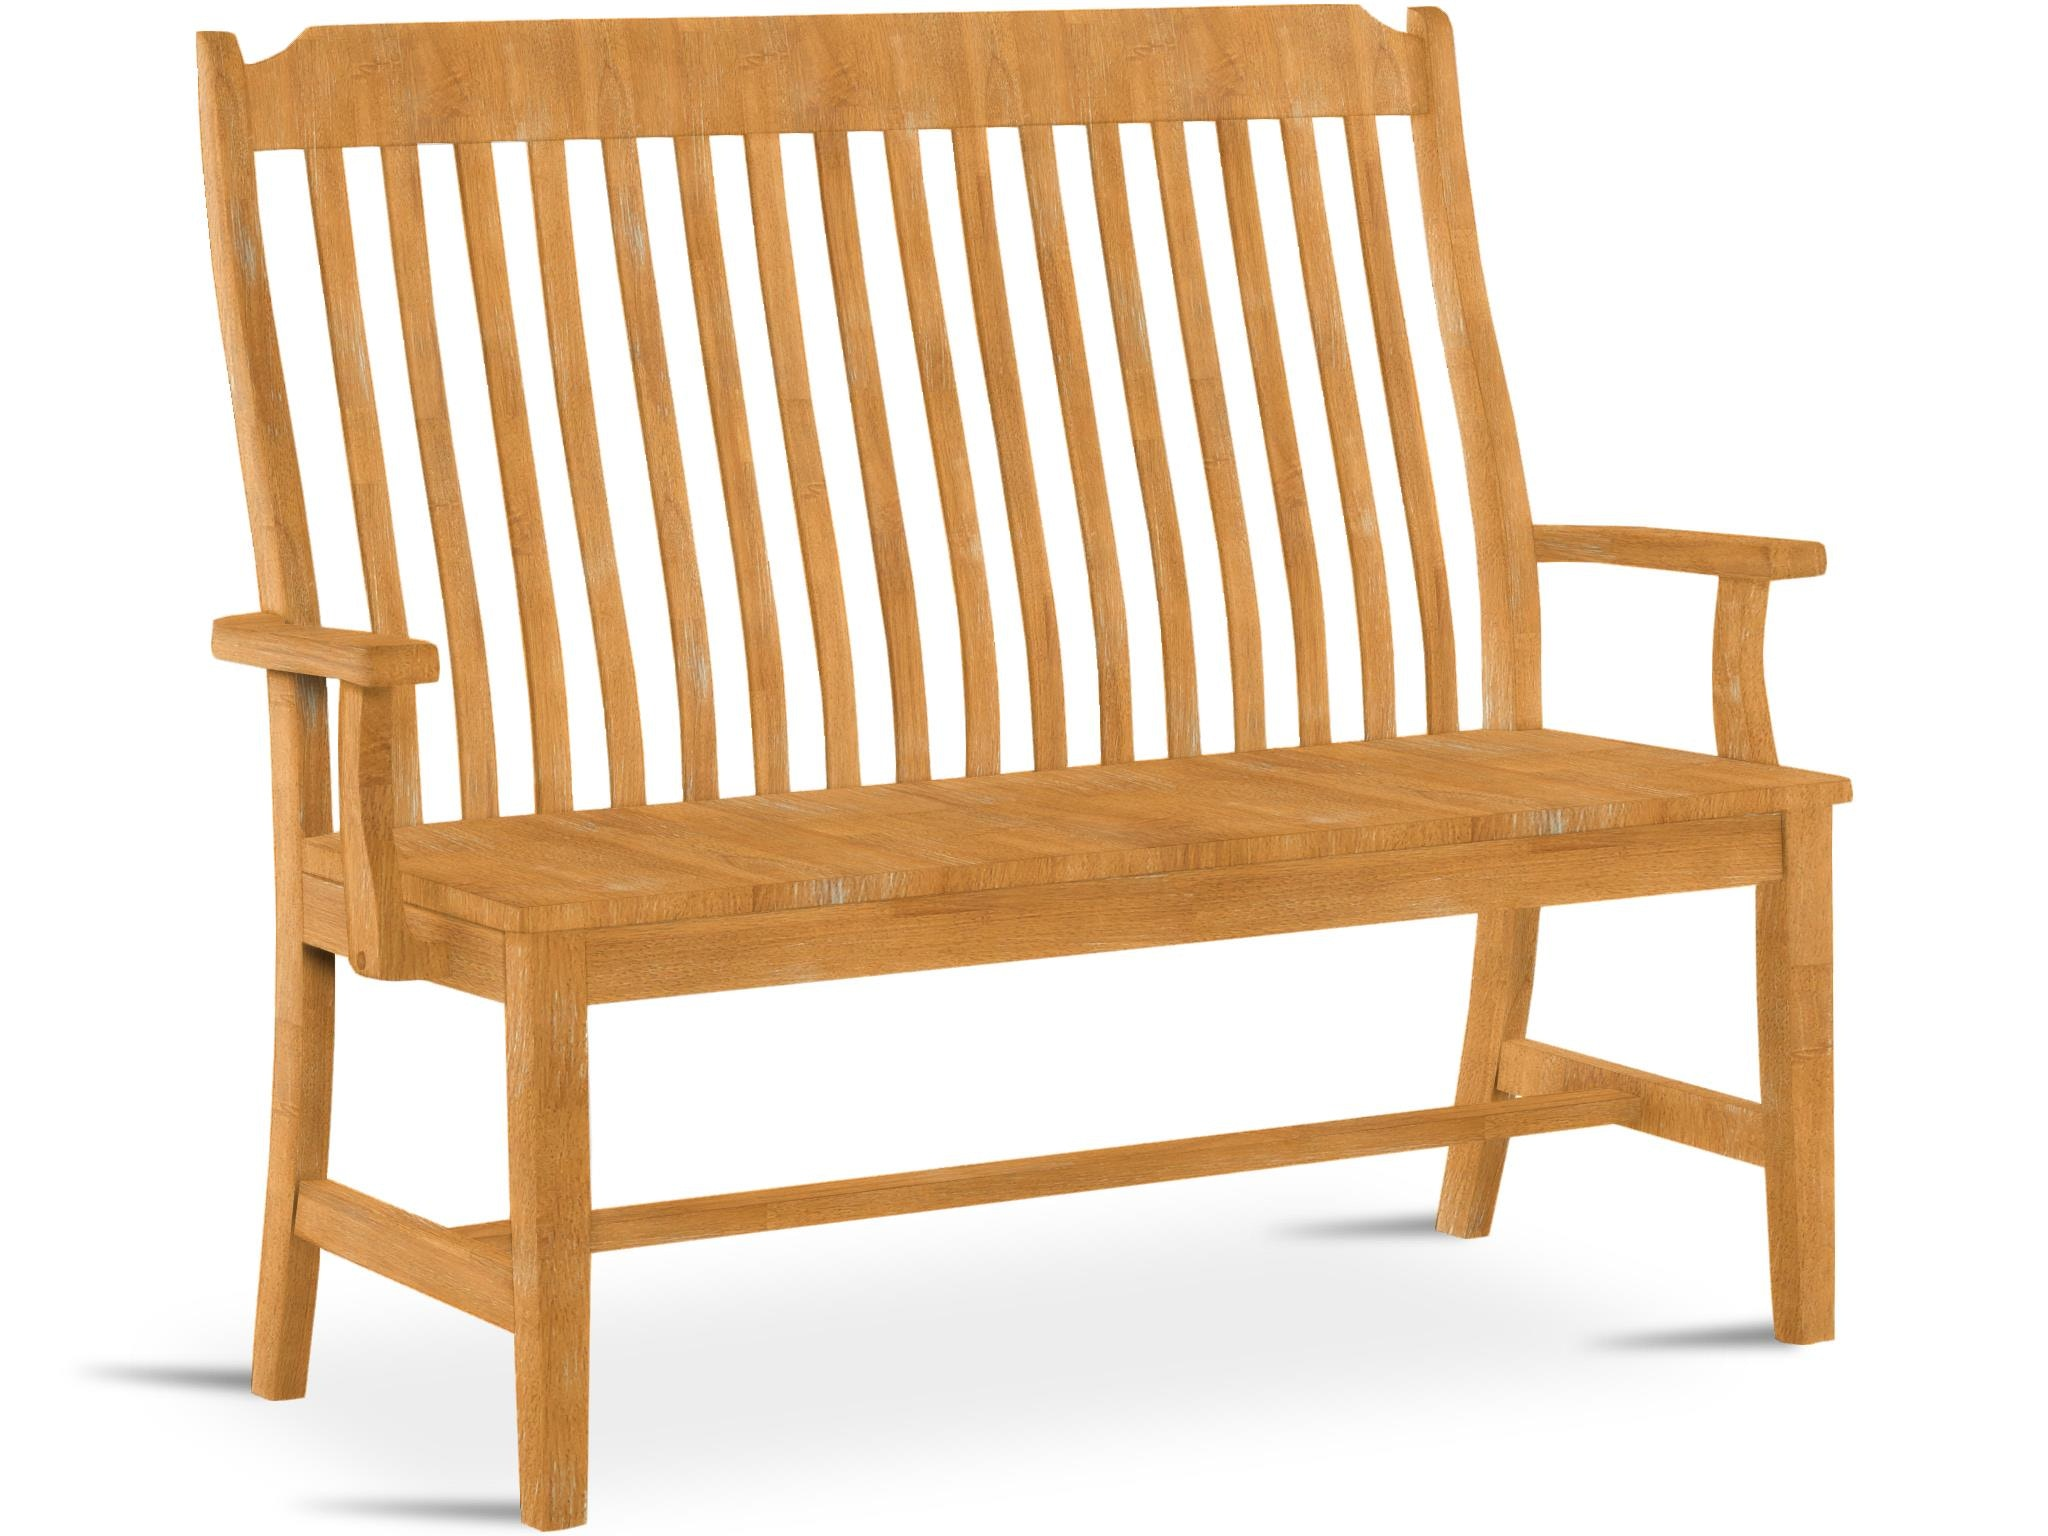 John Thomas Steambent Mission Bench W/ Arms BE 45A